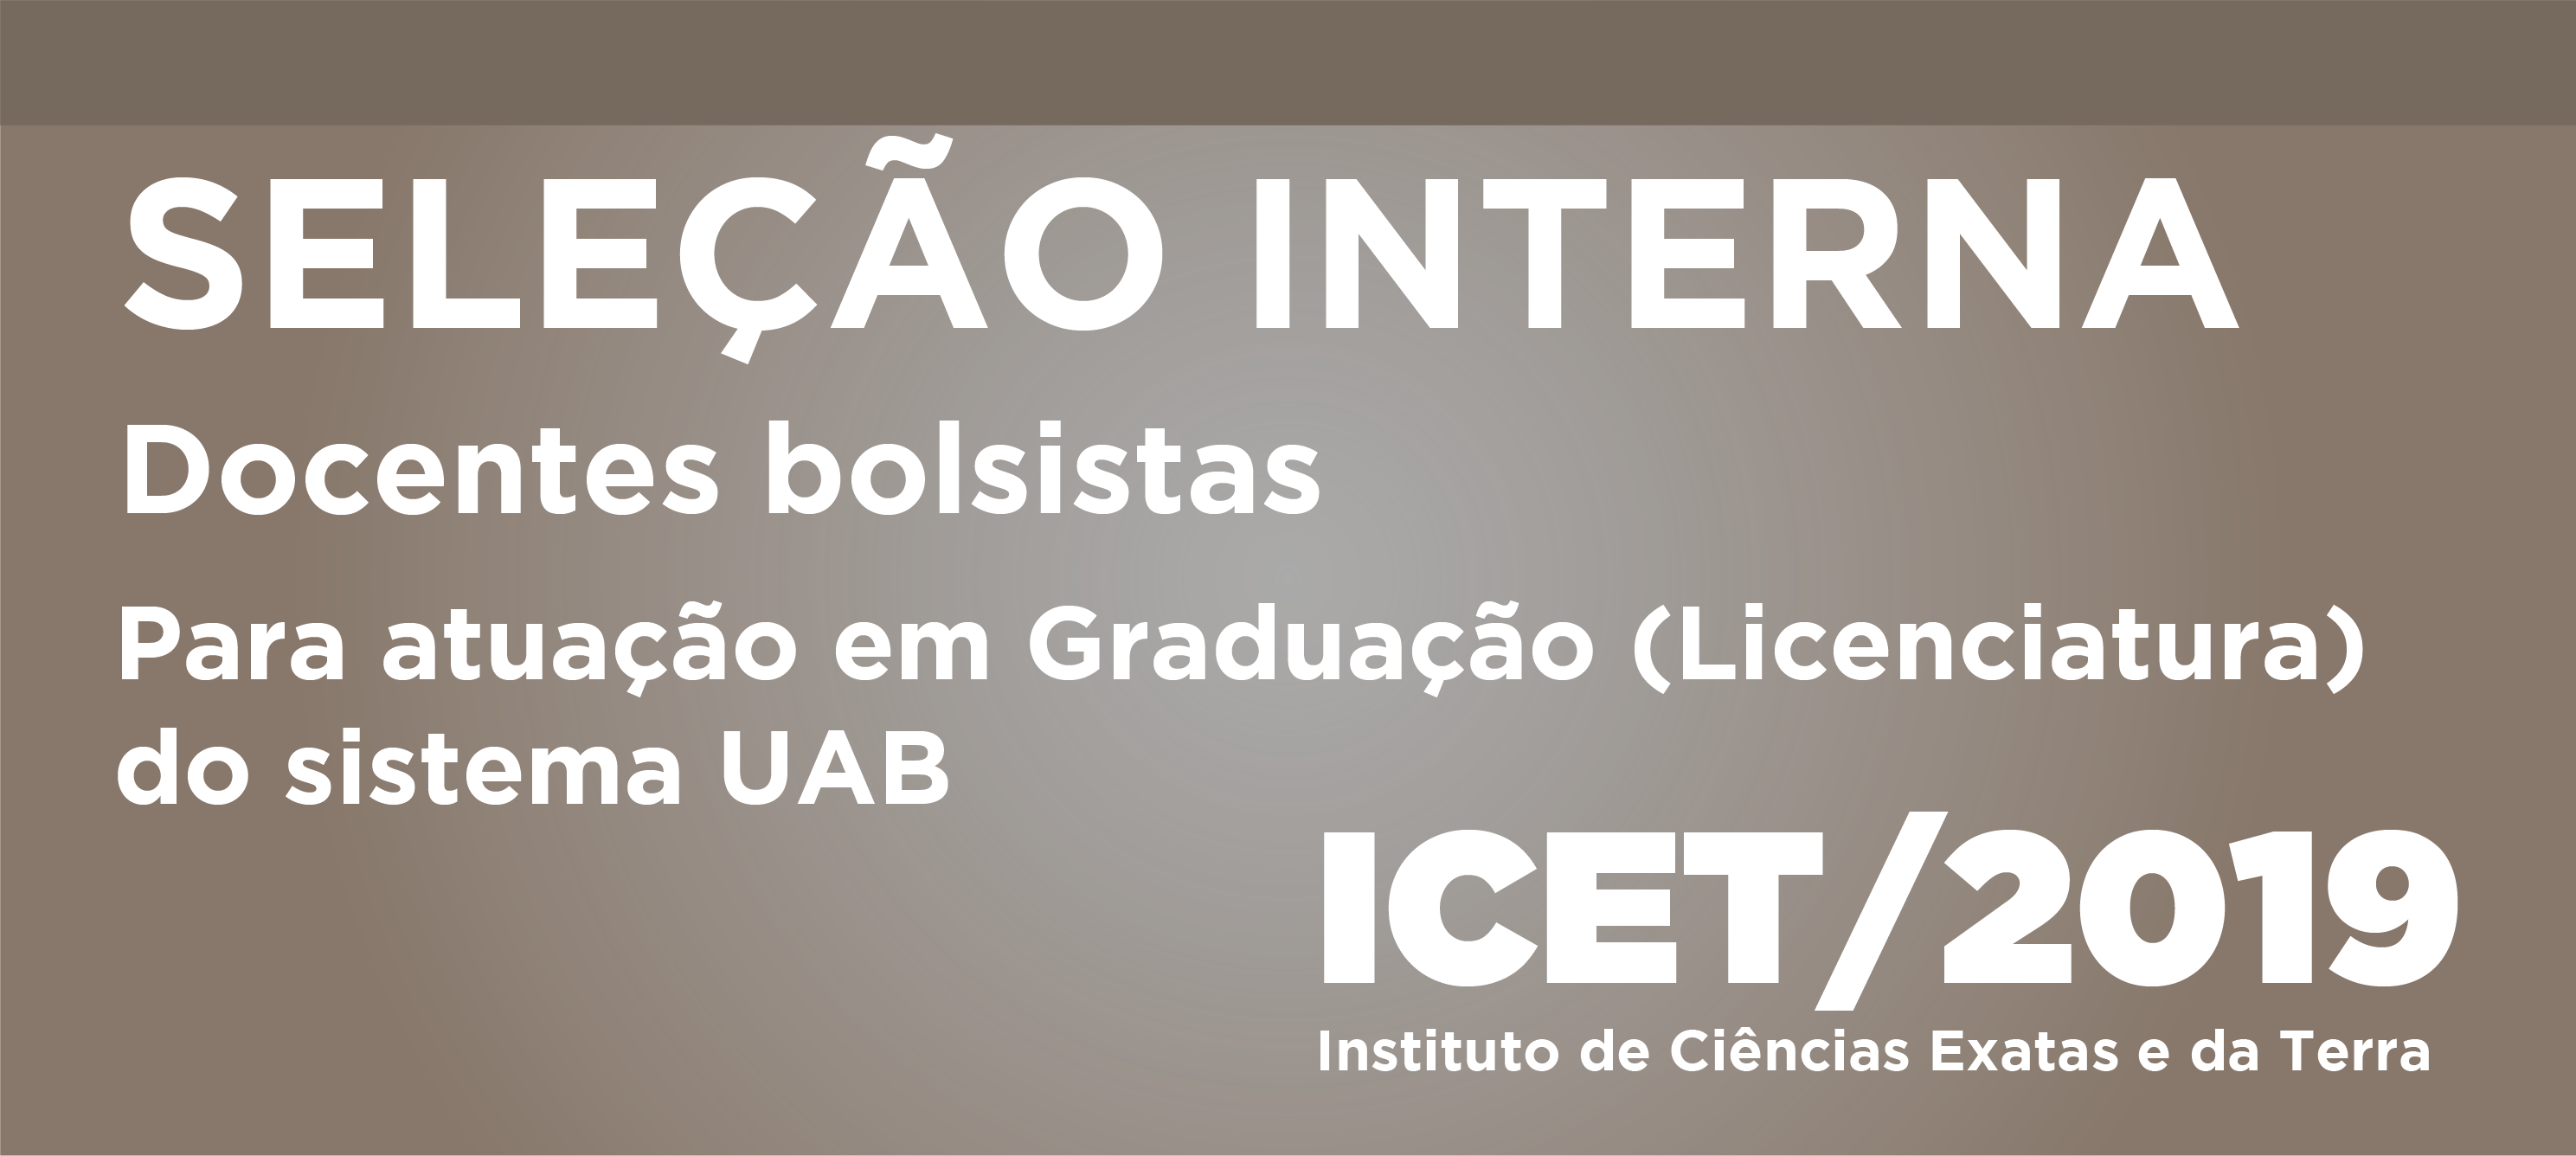 Processo Seletivo Docentes ICET/2019